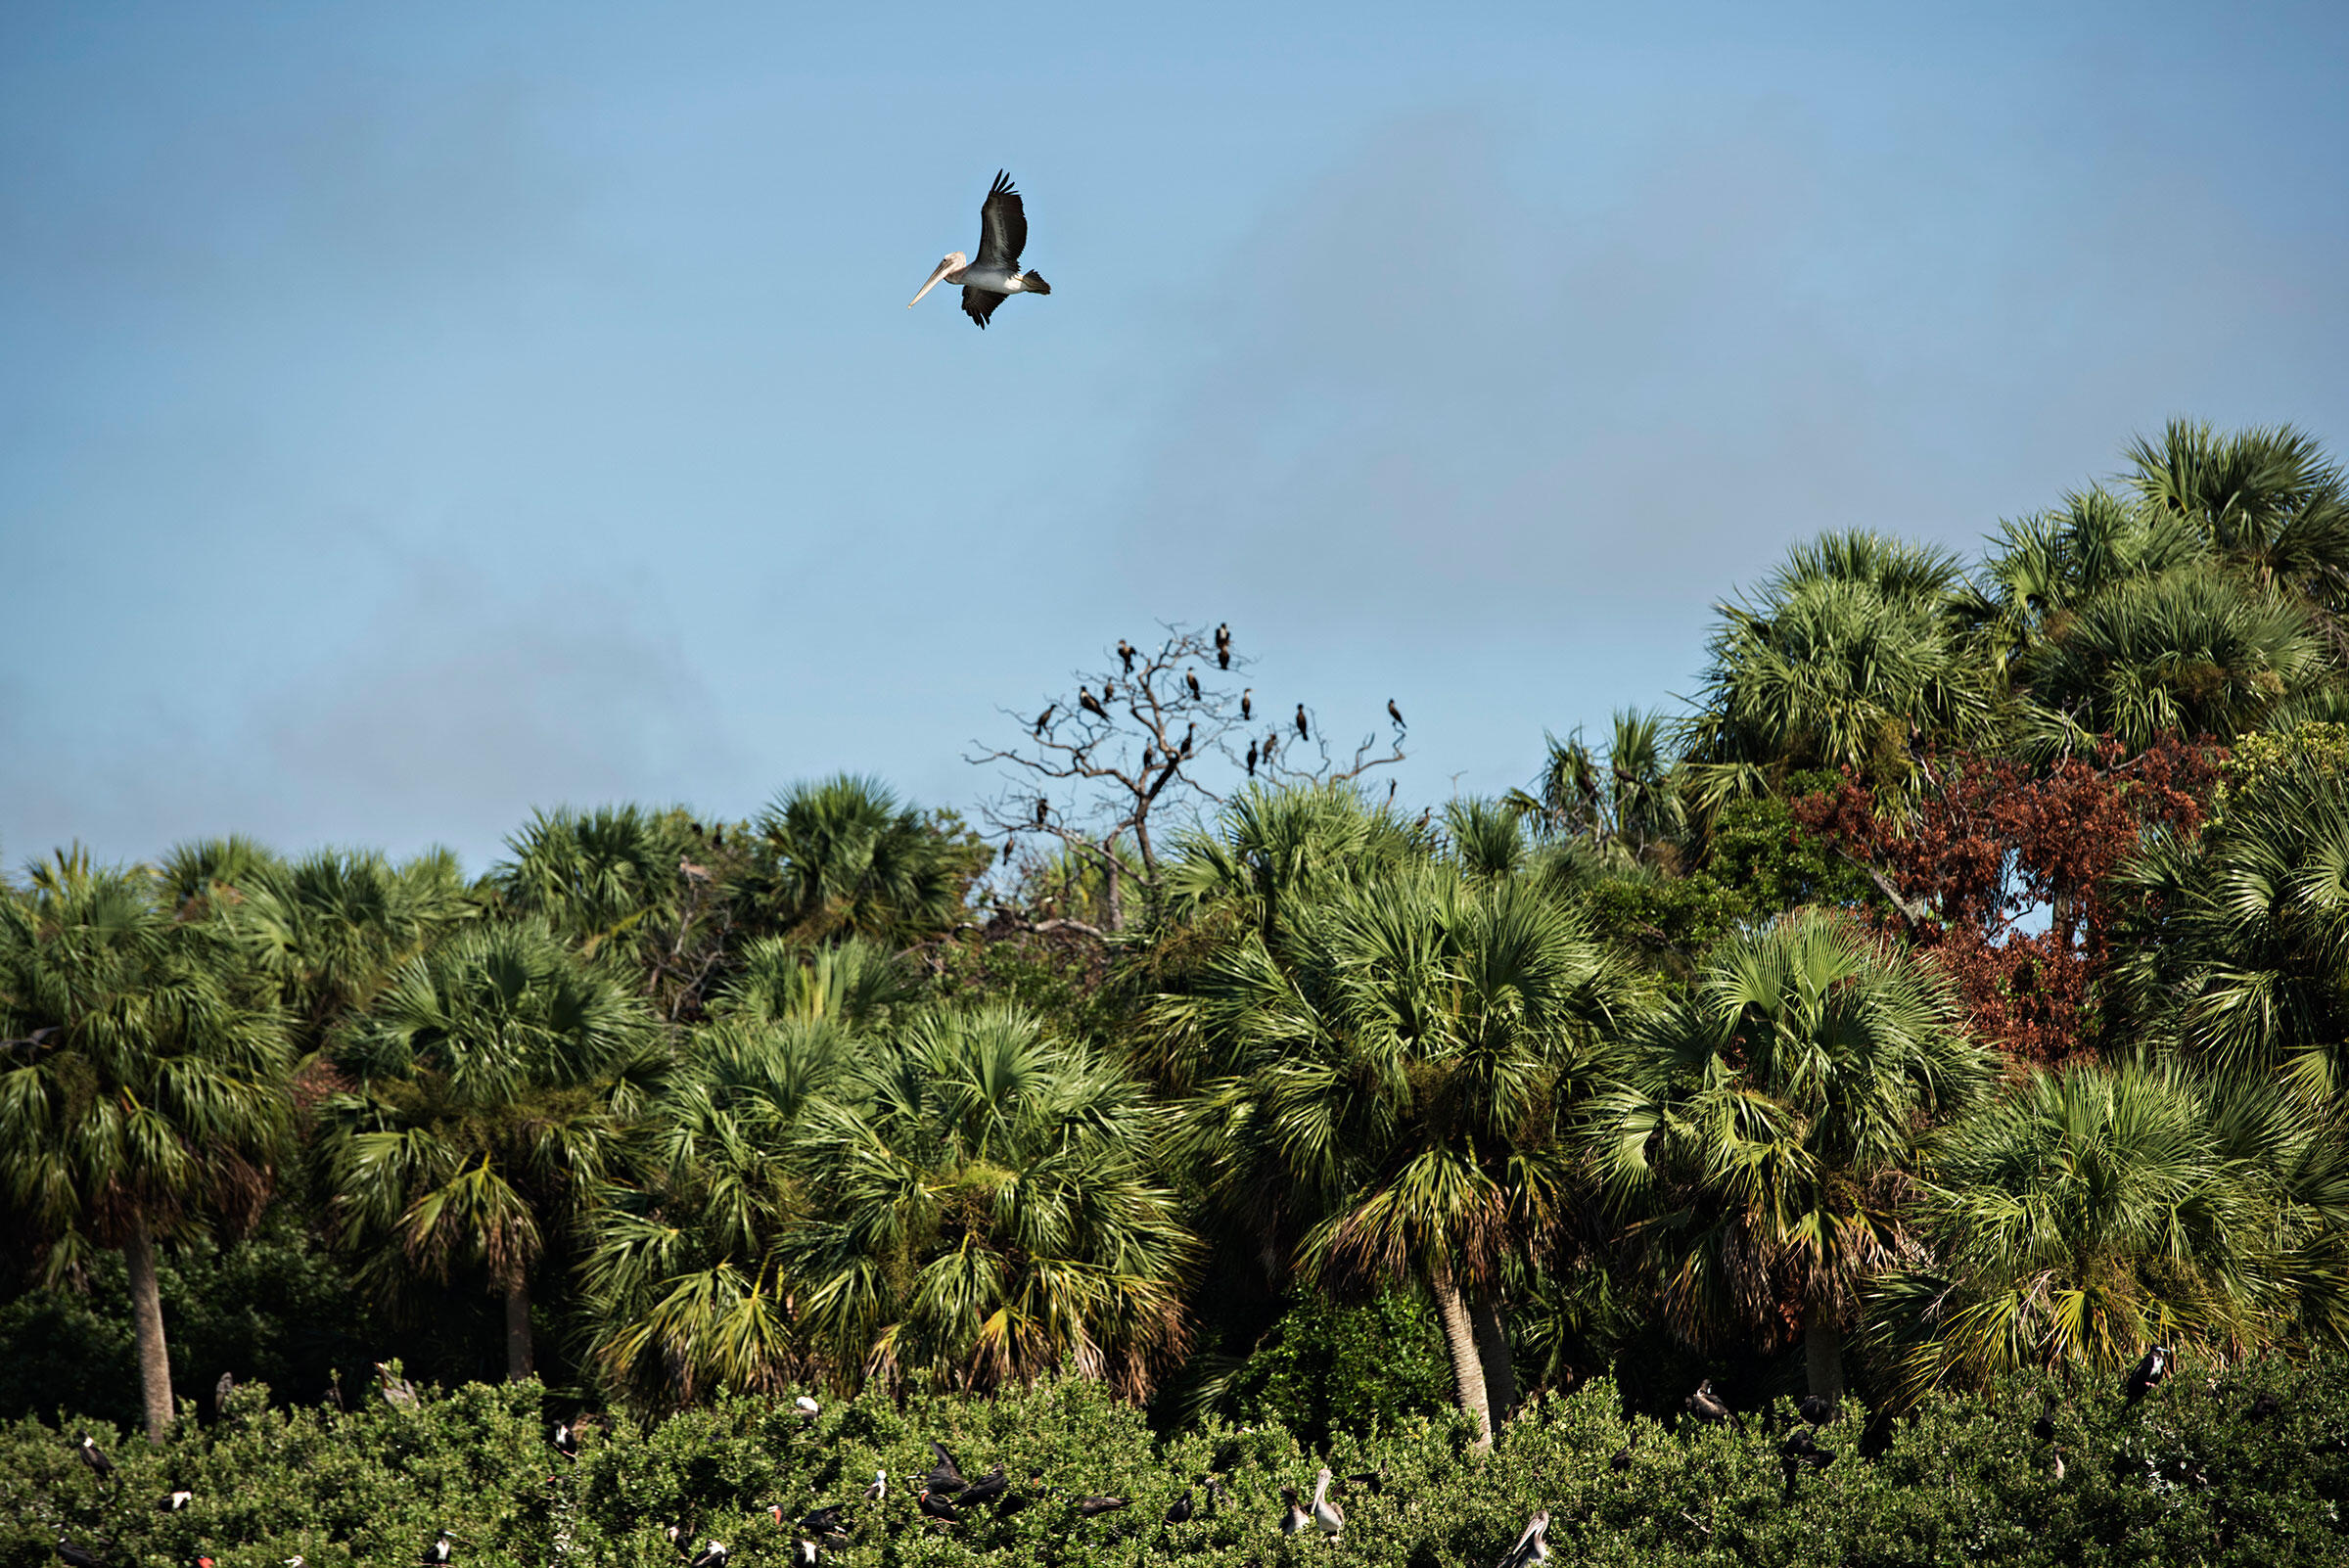 A young Brown Pelican flies over Snake Key, an island adjacent to Seahorse Key, with Double-crested Cormorants and Magnificent Frigatebirds perched in the background. Melissa Lyttle